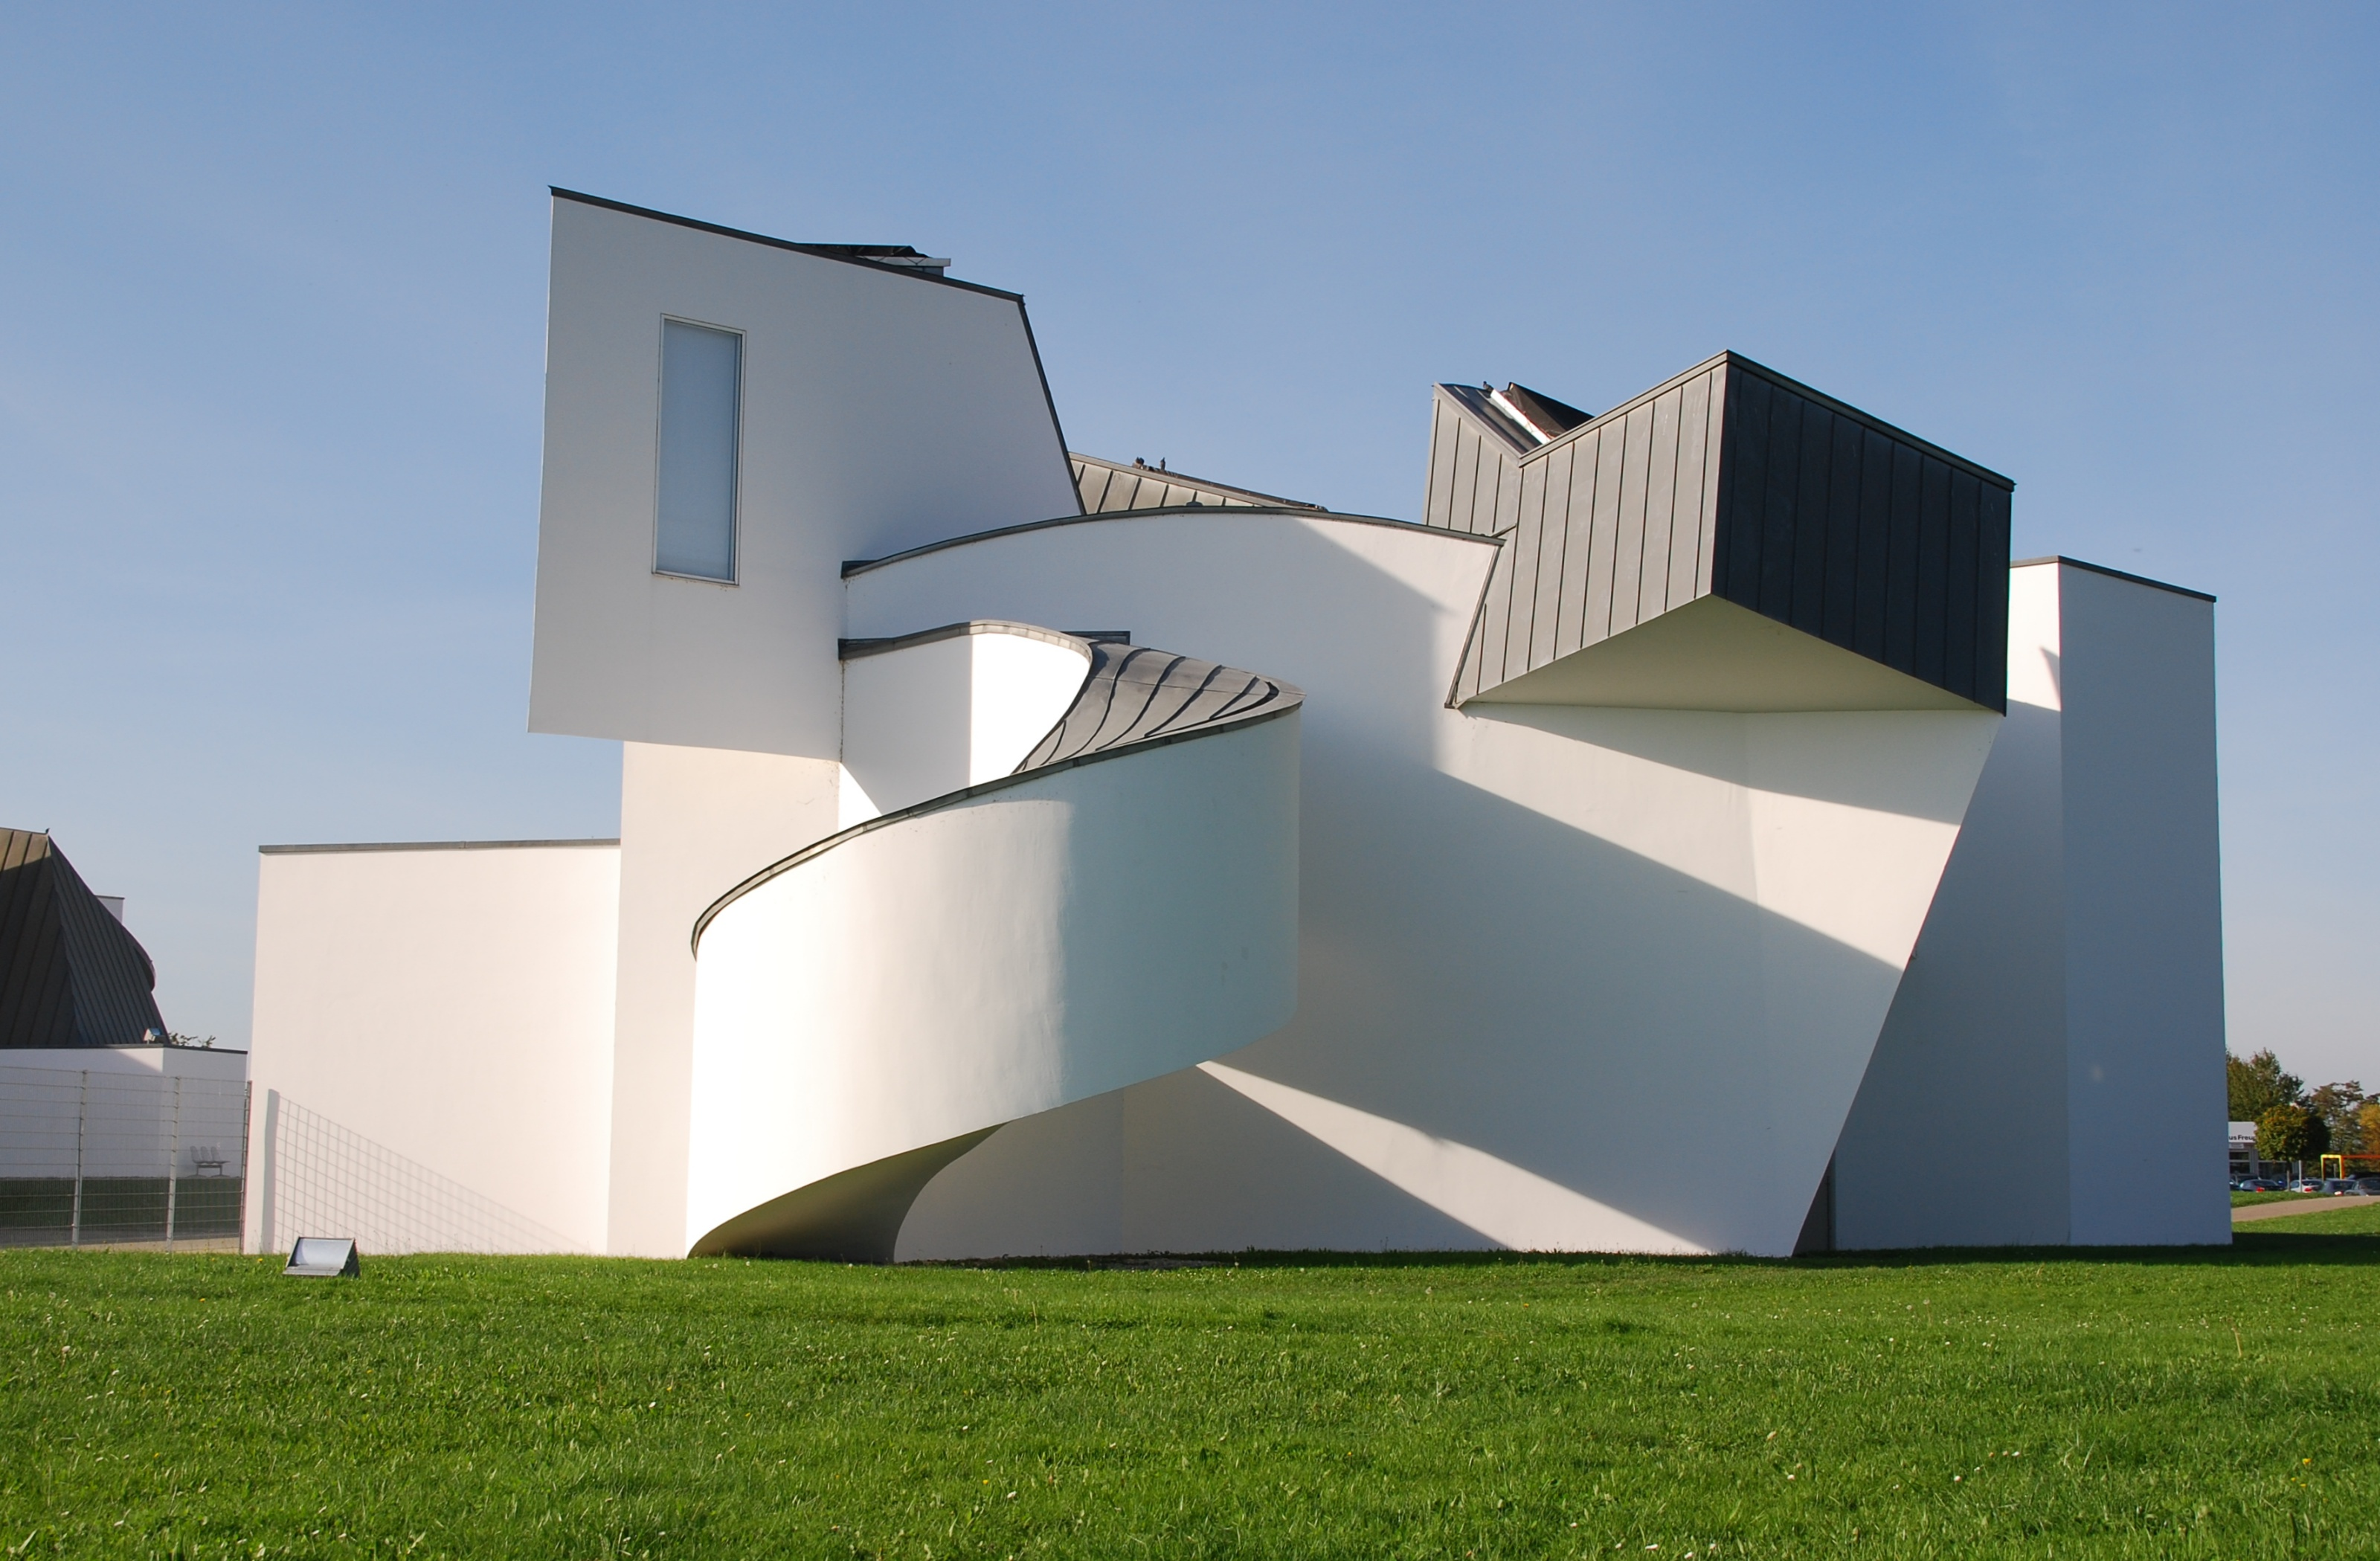 Poster vitra design museum - The Exterior Of The Vitra Design Museum Designed By Frank Gehry Is A Whirl Of White Plaster And Titanium Zinc Alloy